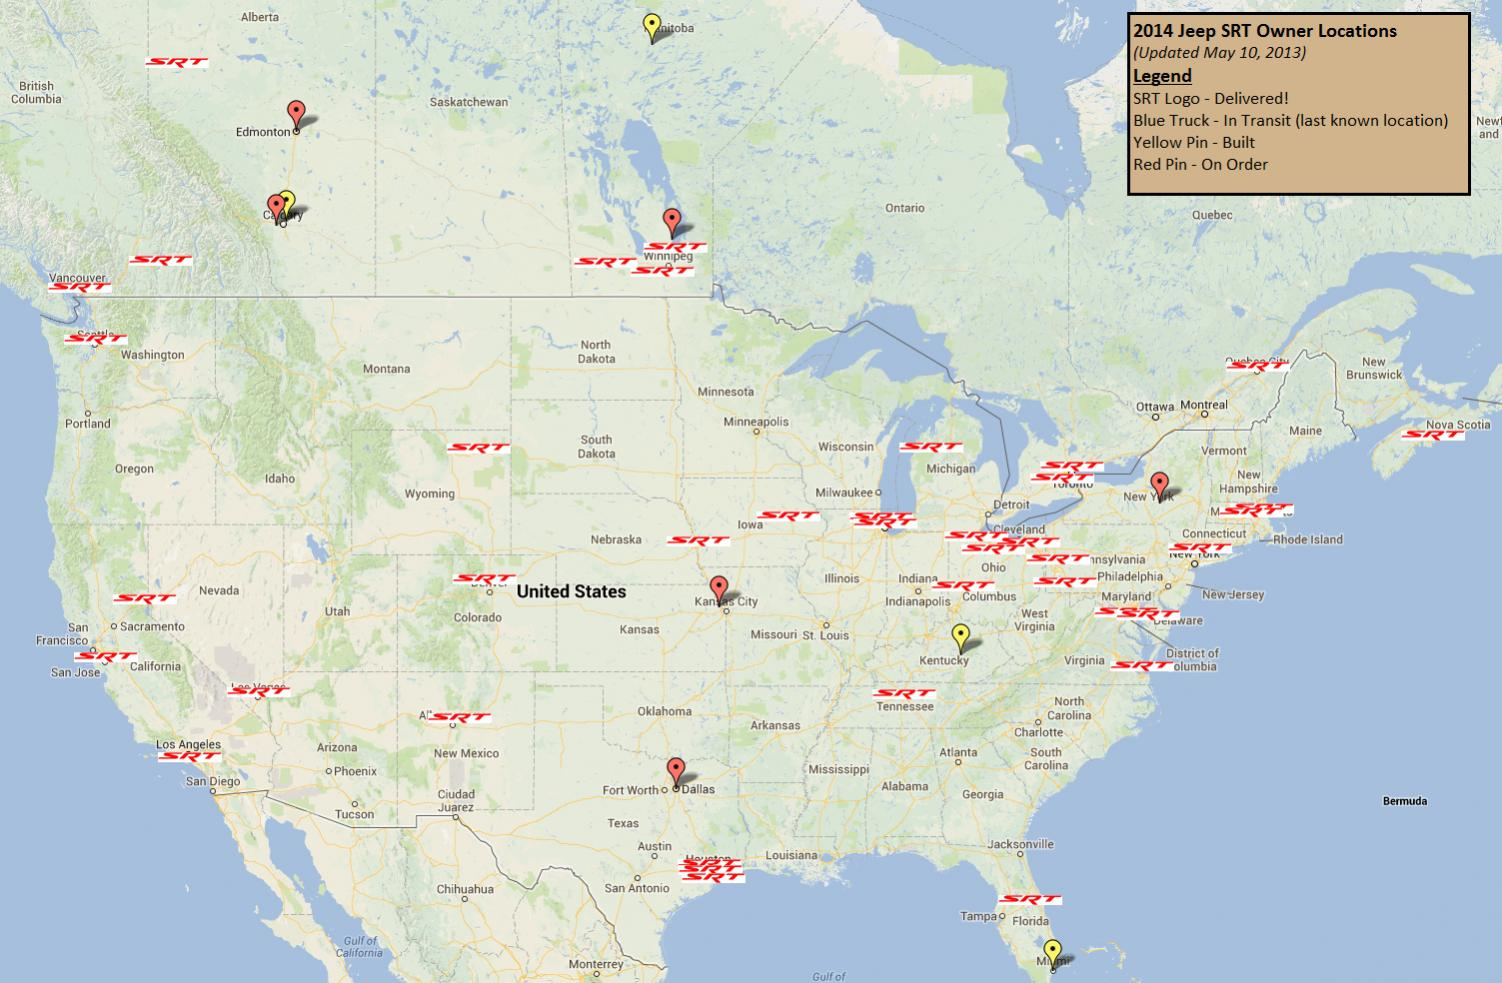 2014 SRT Owners Map 2013 06 10